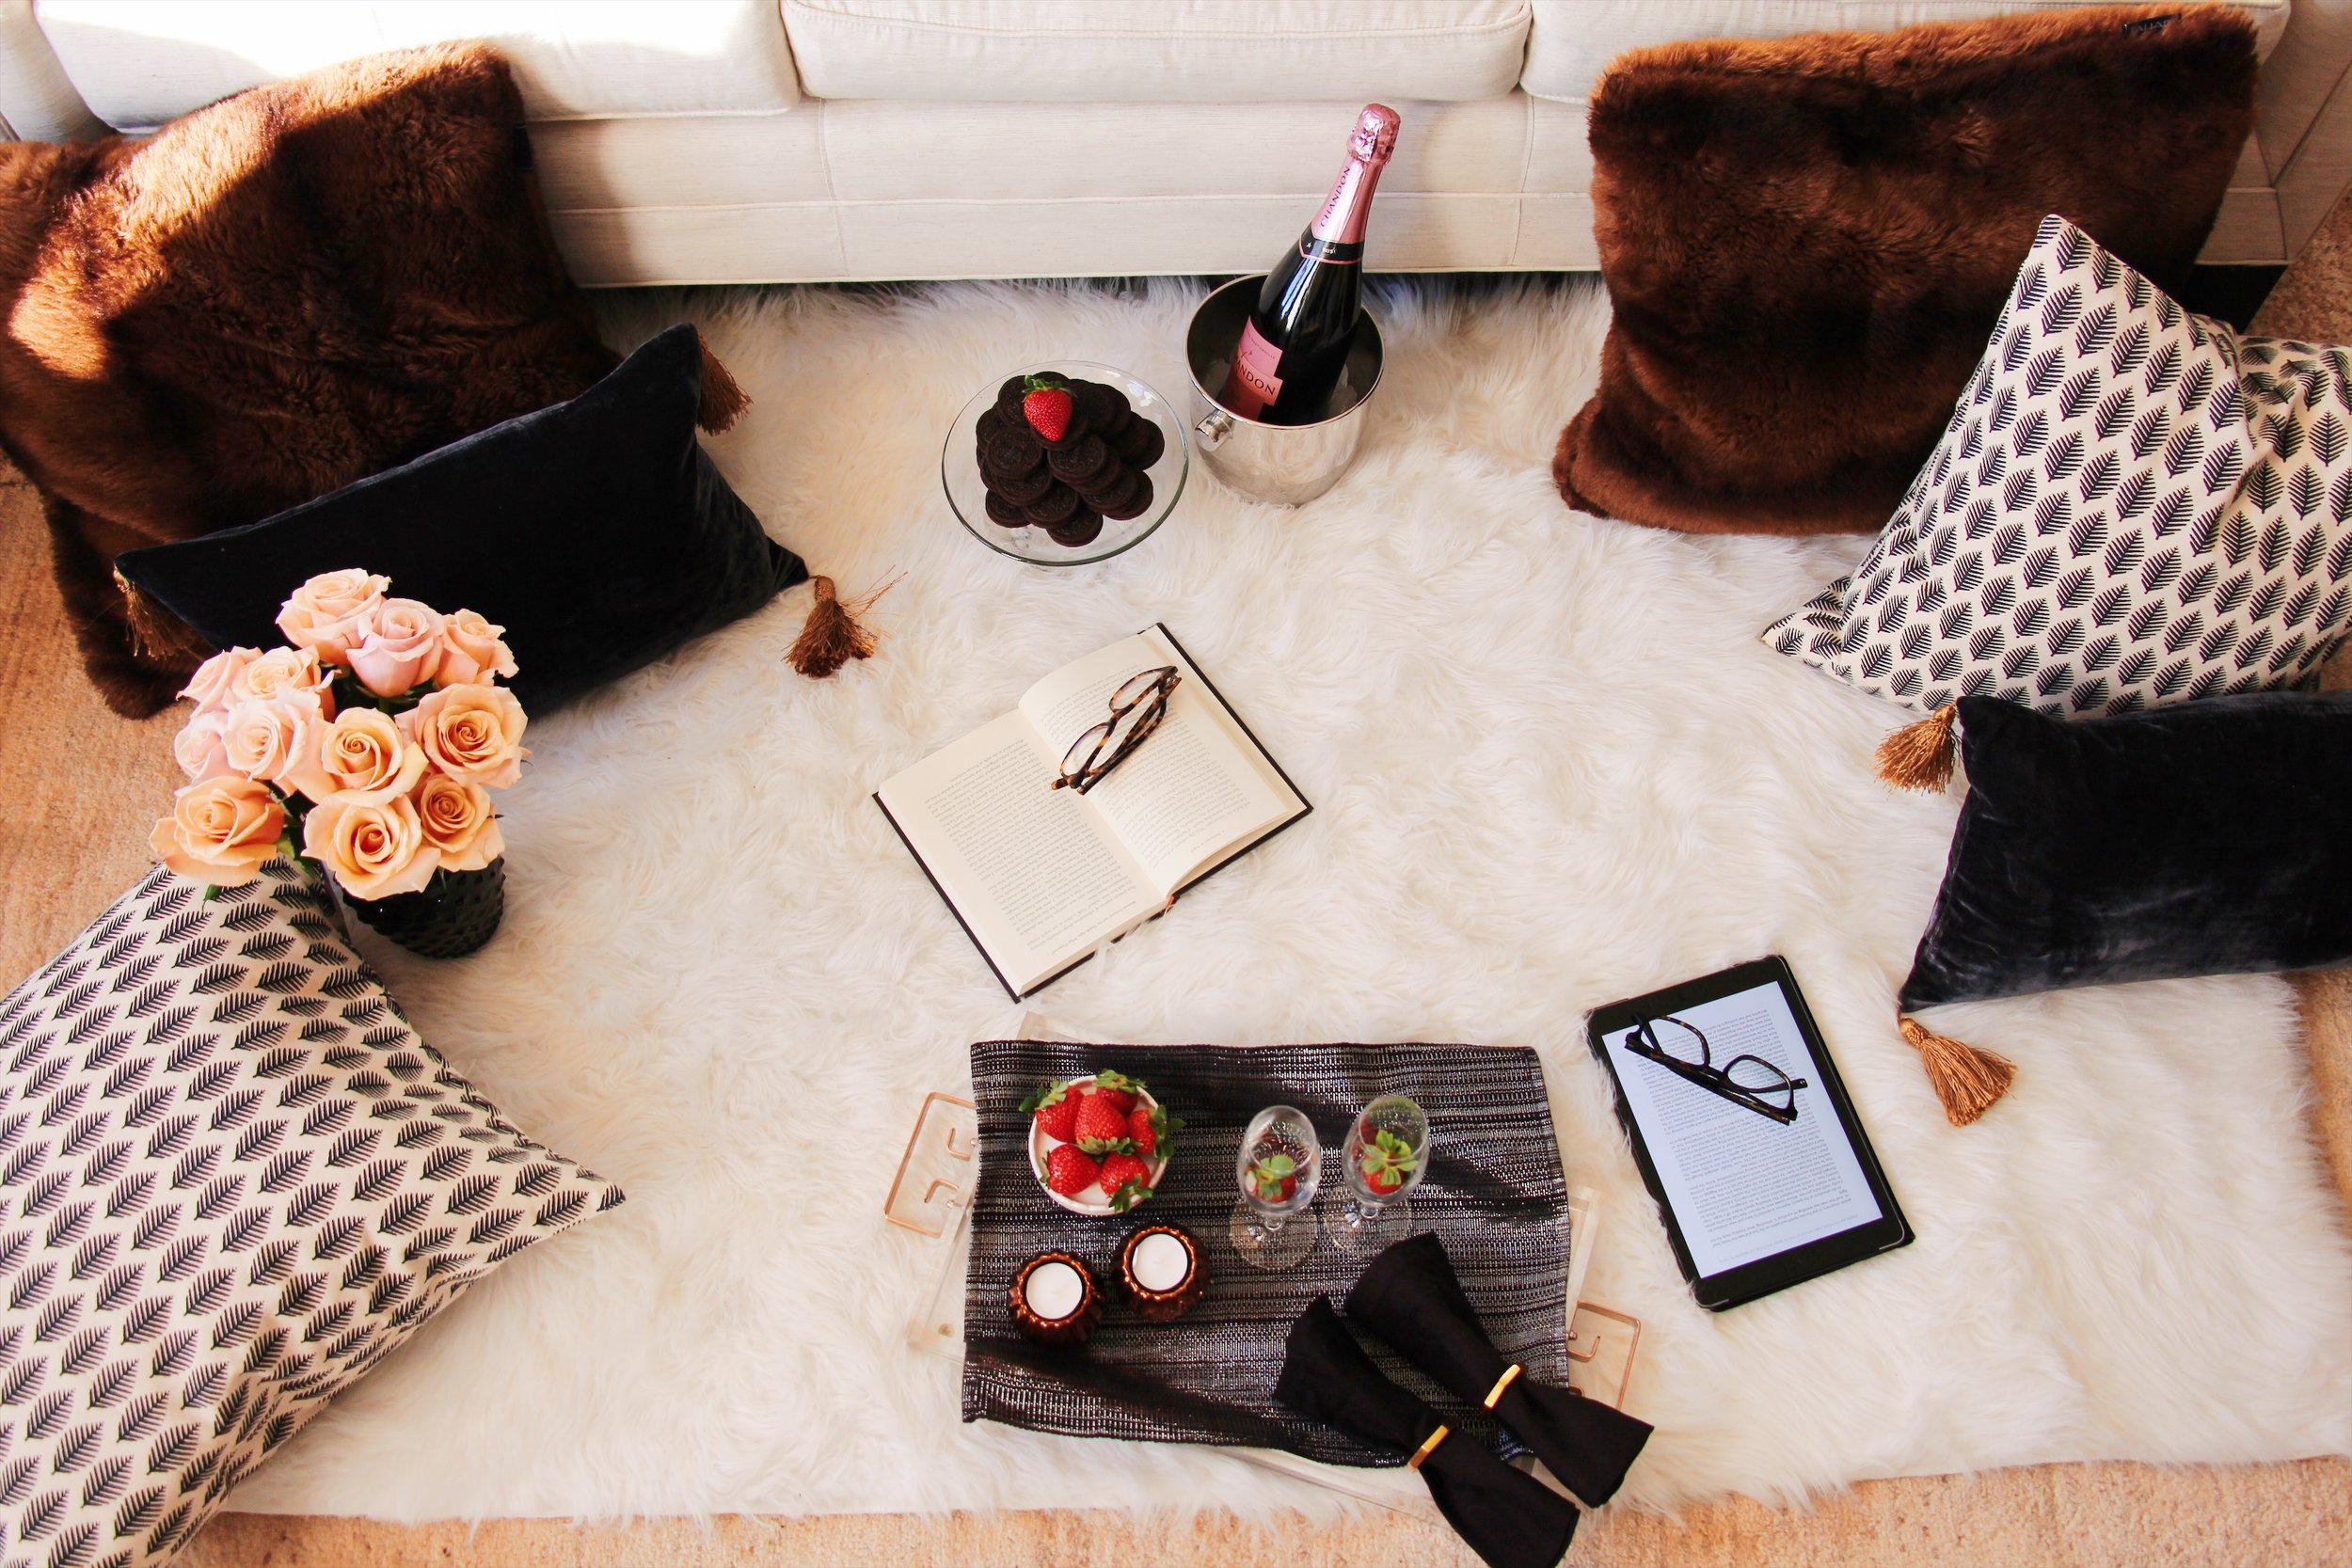 TIP 1 -->Create a cozy area in your own living room. A fluffy rug and pillows on the floor invite you to relax.